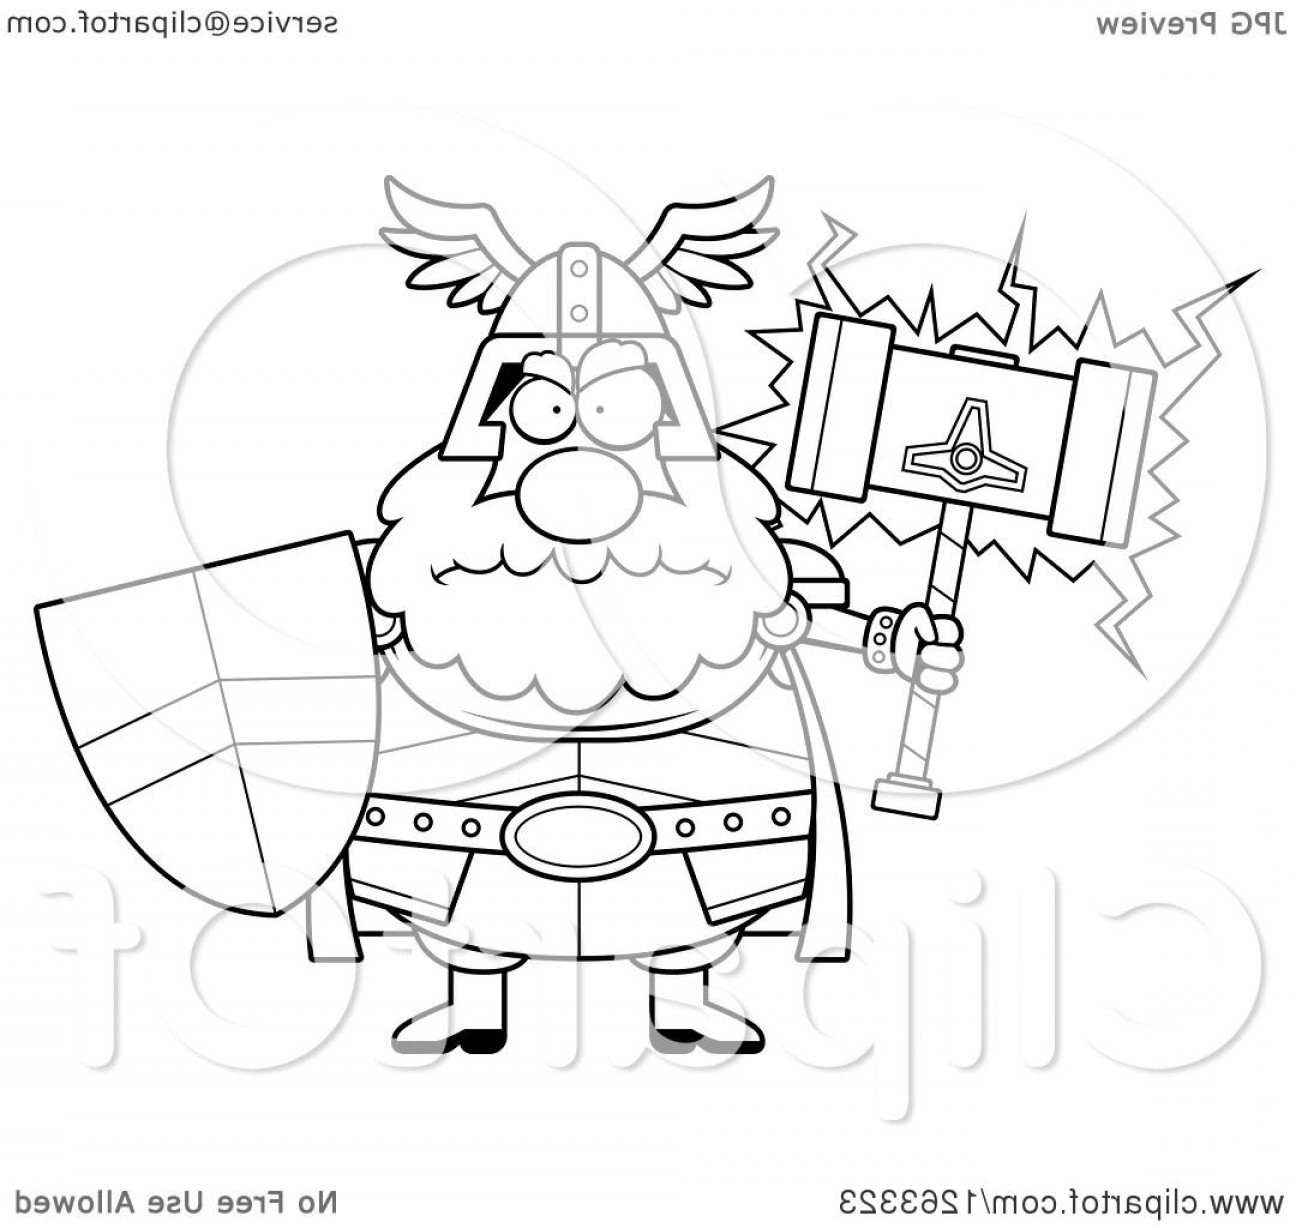 Thor Vector Black: Black And White Cartoon Mad Chubby Thor Holding A Hammer And Shield